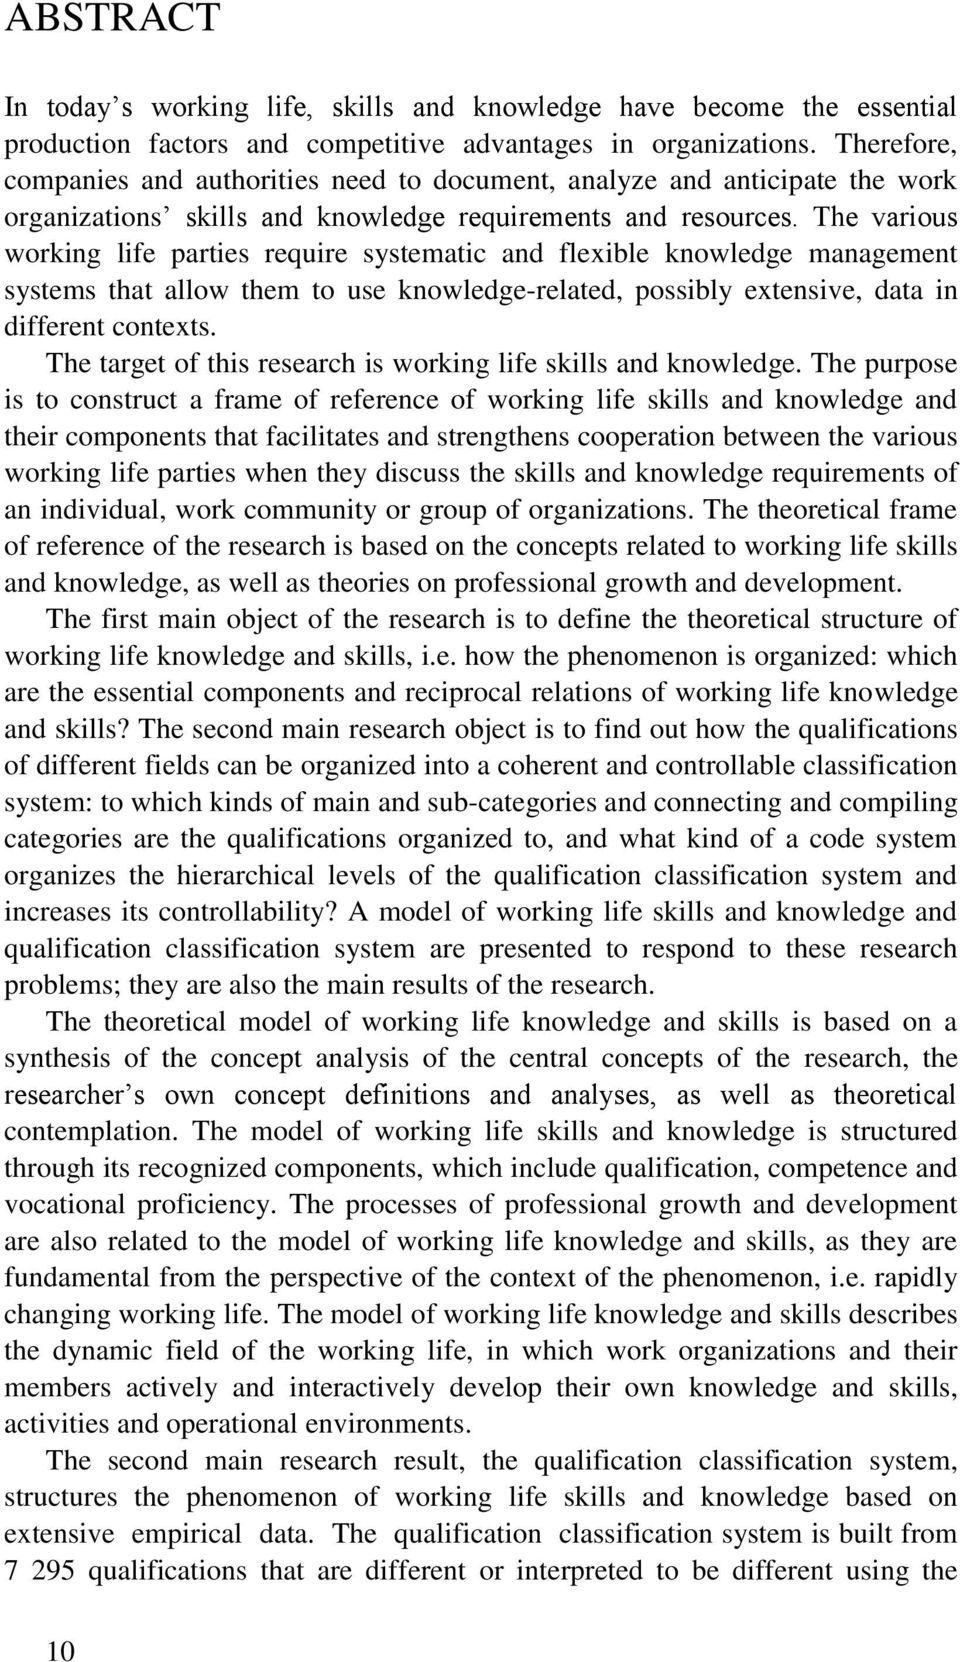 The various working life parties require systematic and flexible knowledge management systems that allow them to use knowledge-related, possibly extensive, data in different contexts.